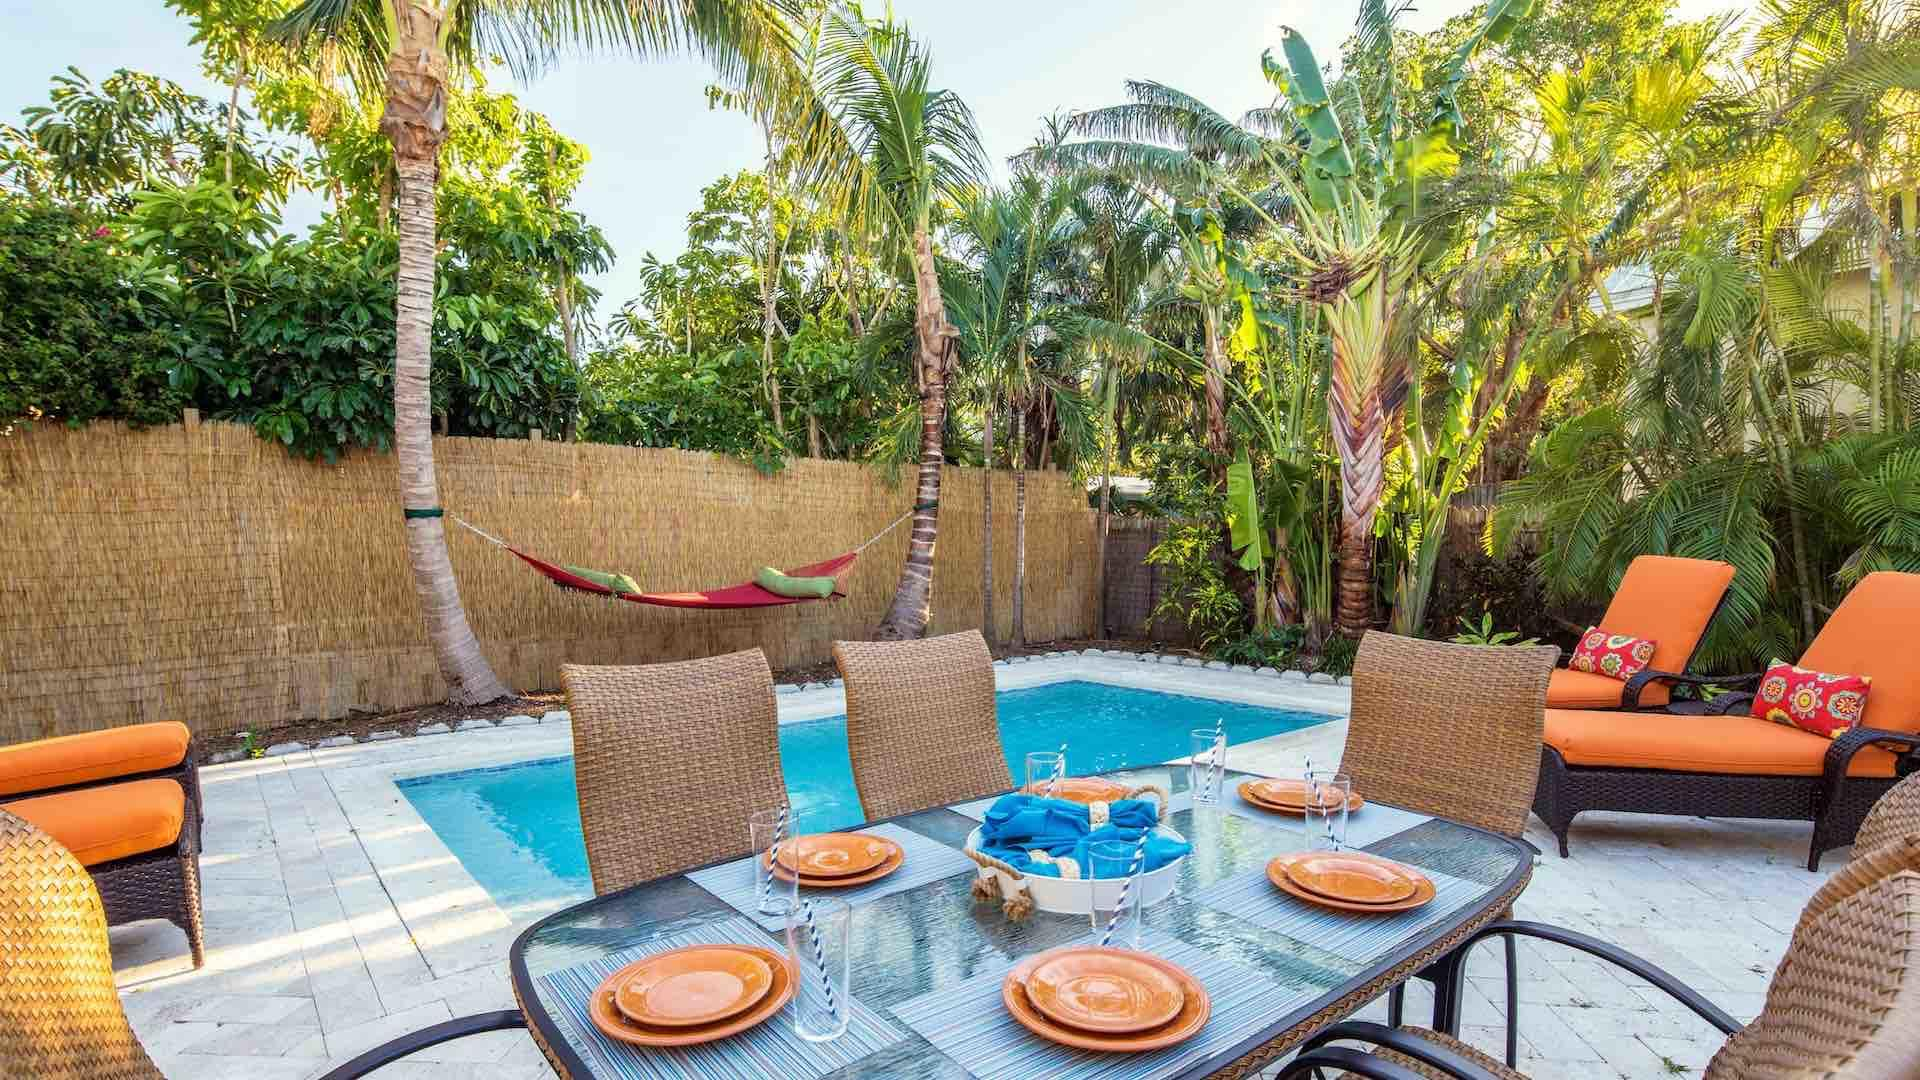 Enjoy a poolside meal using the outdoor dining table, which seats six...